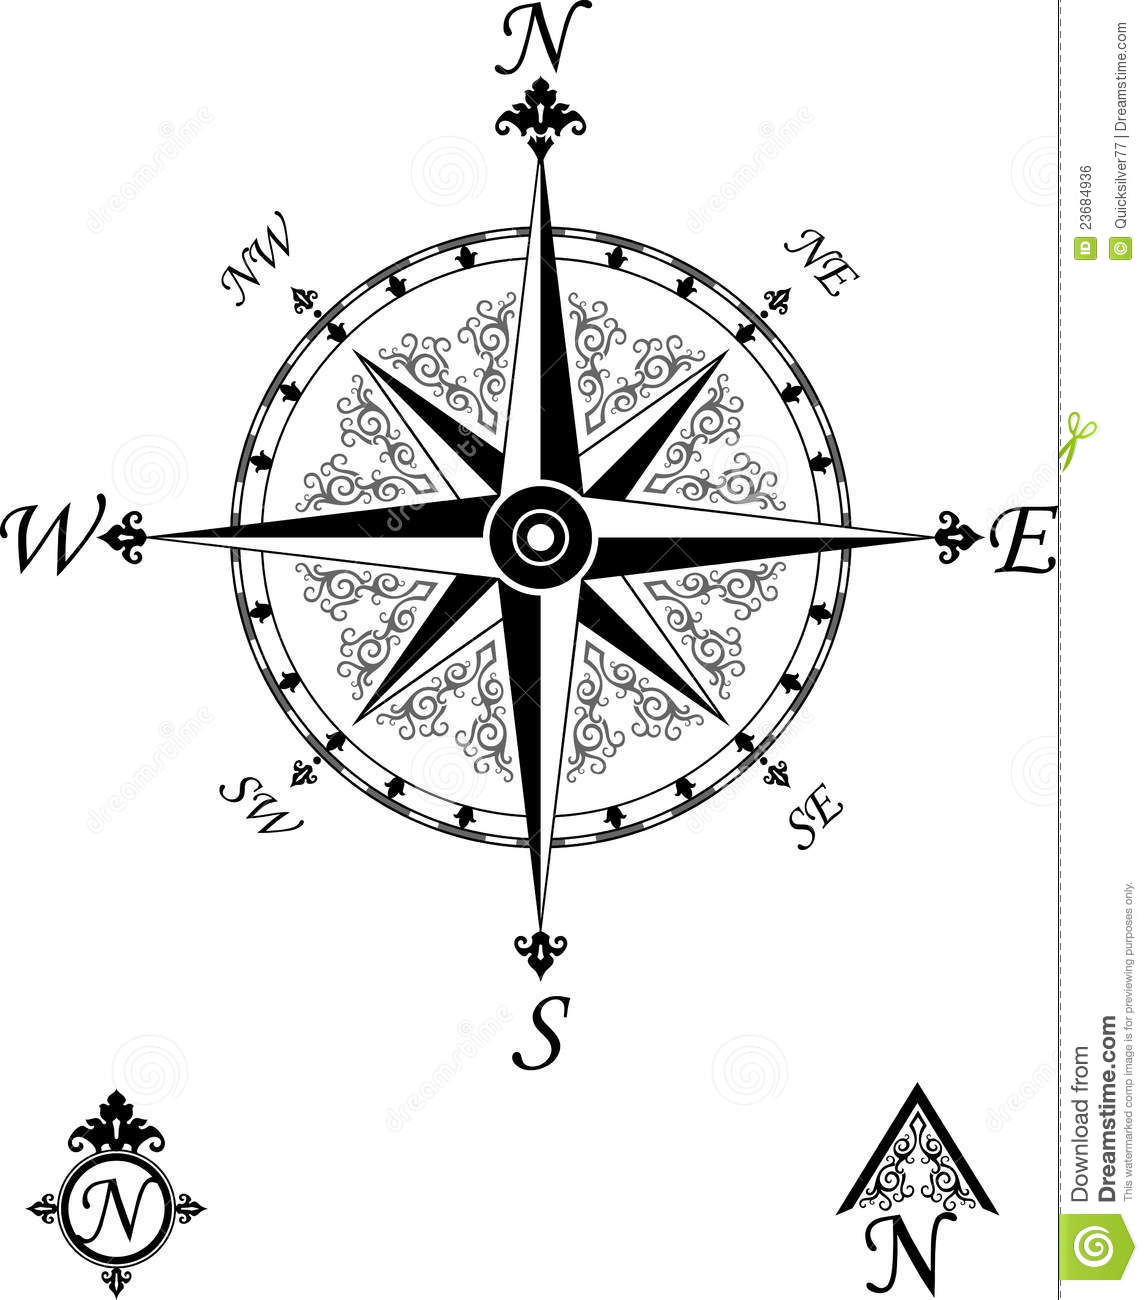 Victorian Vintage Compass Royalty Free Stock Image - Image: 23684936